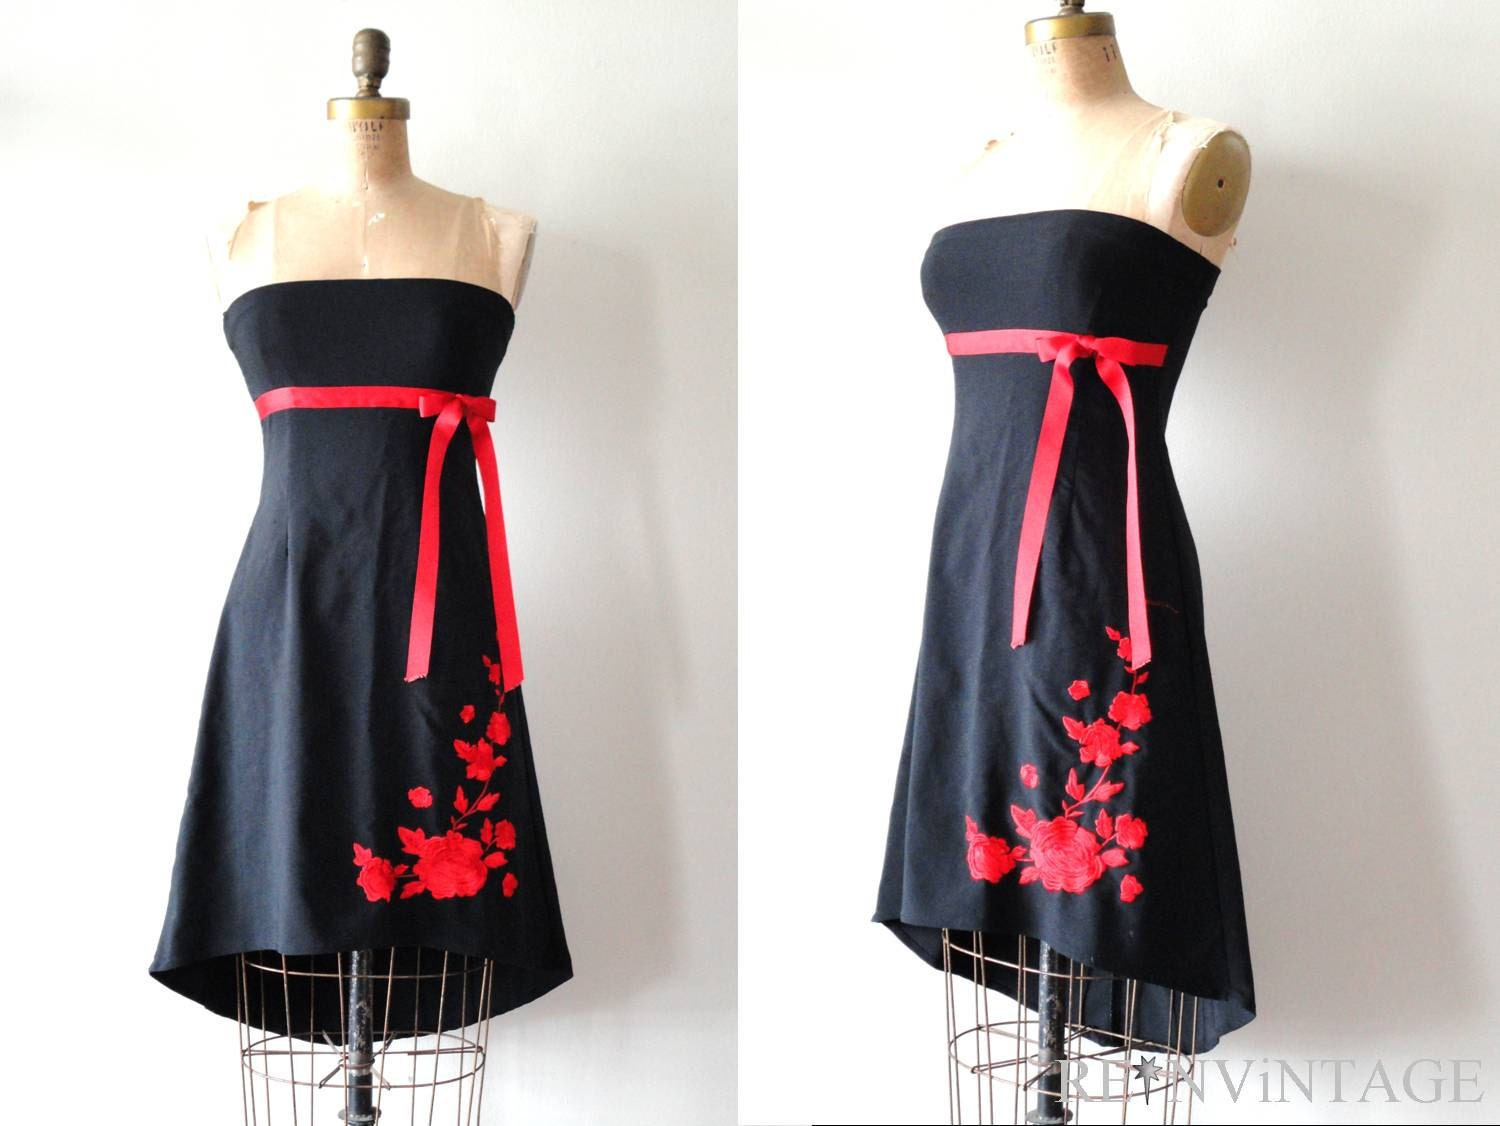 Be more with Baltimore, darling! A fabulous vintage inspired frock from Unique Vintage, the Baltimore Swing Dress is cast in a lightweight black fabric and features a dramatic embroidered red rose on the bust, with gorgeous green leaves and tall stem.